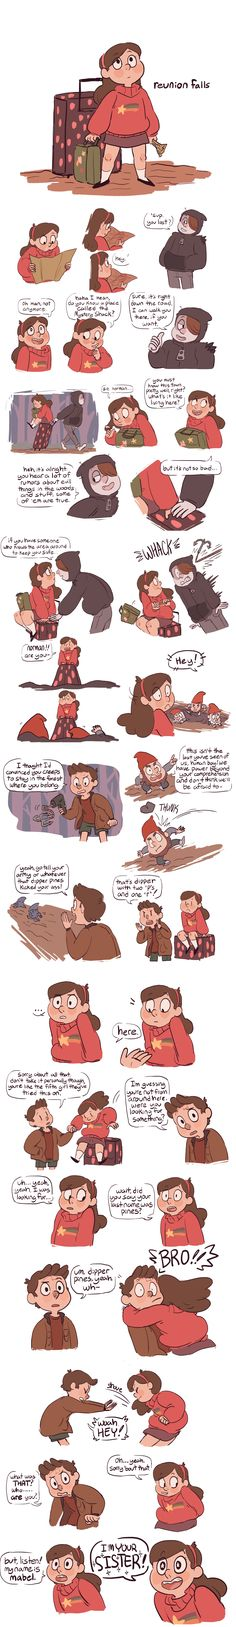 Reunion Falls AU - a gravity falls au in which mabel and dipper, for (possibly supernatural) reasons unknown, were separated at birth, and while mabel grew up as an only child in her normal home with normal parents, dipper grew up in gravity falls raised by grunkle stan. but at age 12 mabel learns of dipper's existence and decides to pay her long lost twin a surprise visit, completely unaware of the kind of wacky business going on in his hometown  more on this later!!